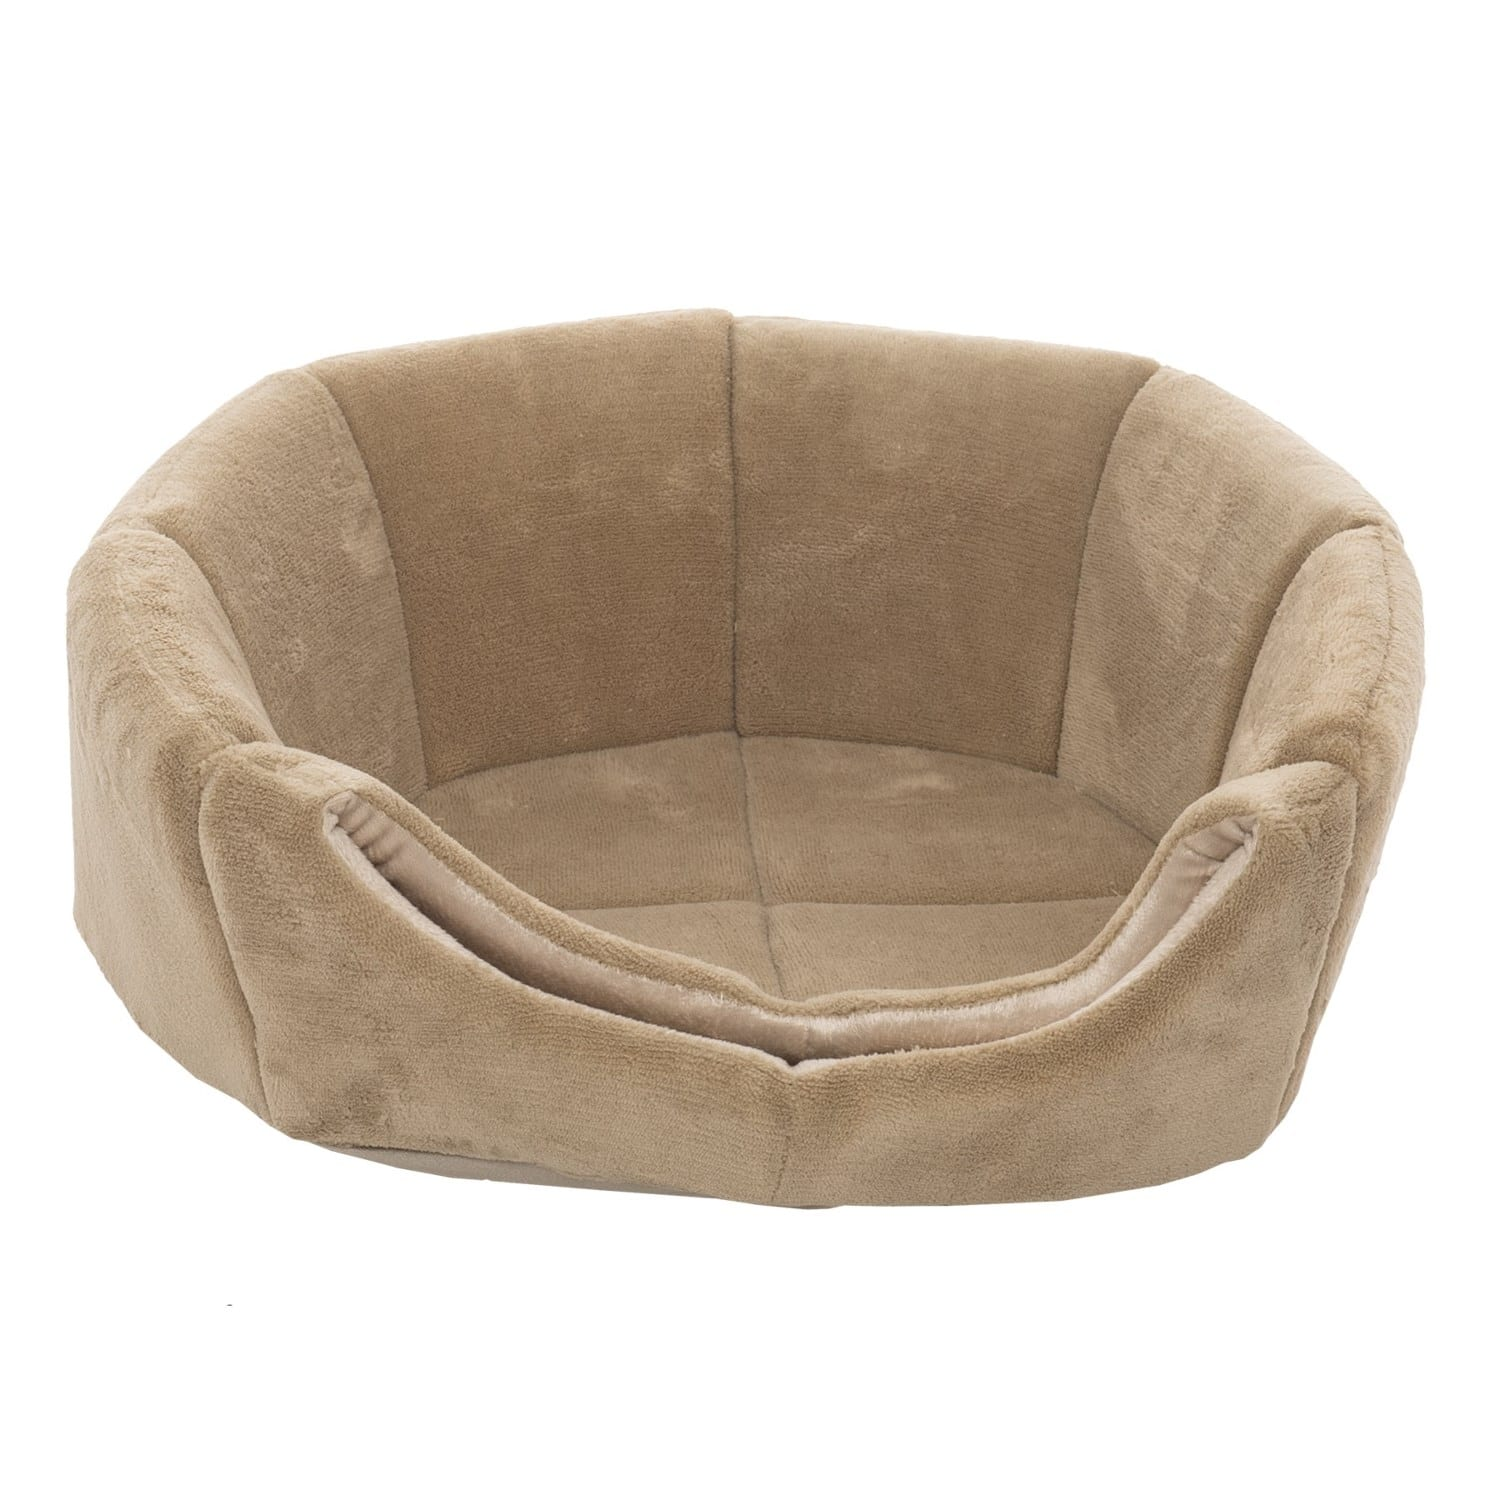 "Precious Tails Tan Coral Fleece ""2-In-1"" Pet Dome Bed - 18x18x13""  $5.00 + Free Shipping"